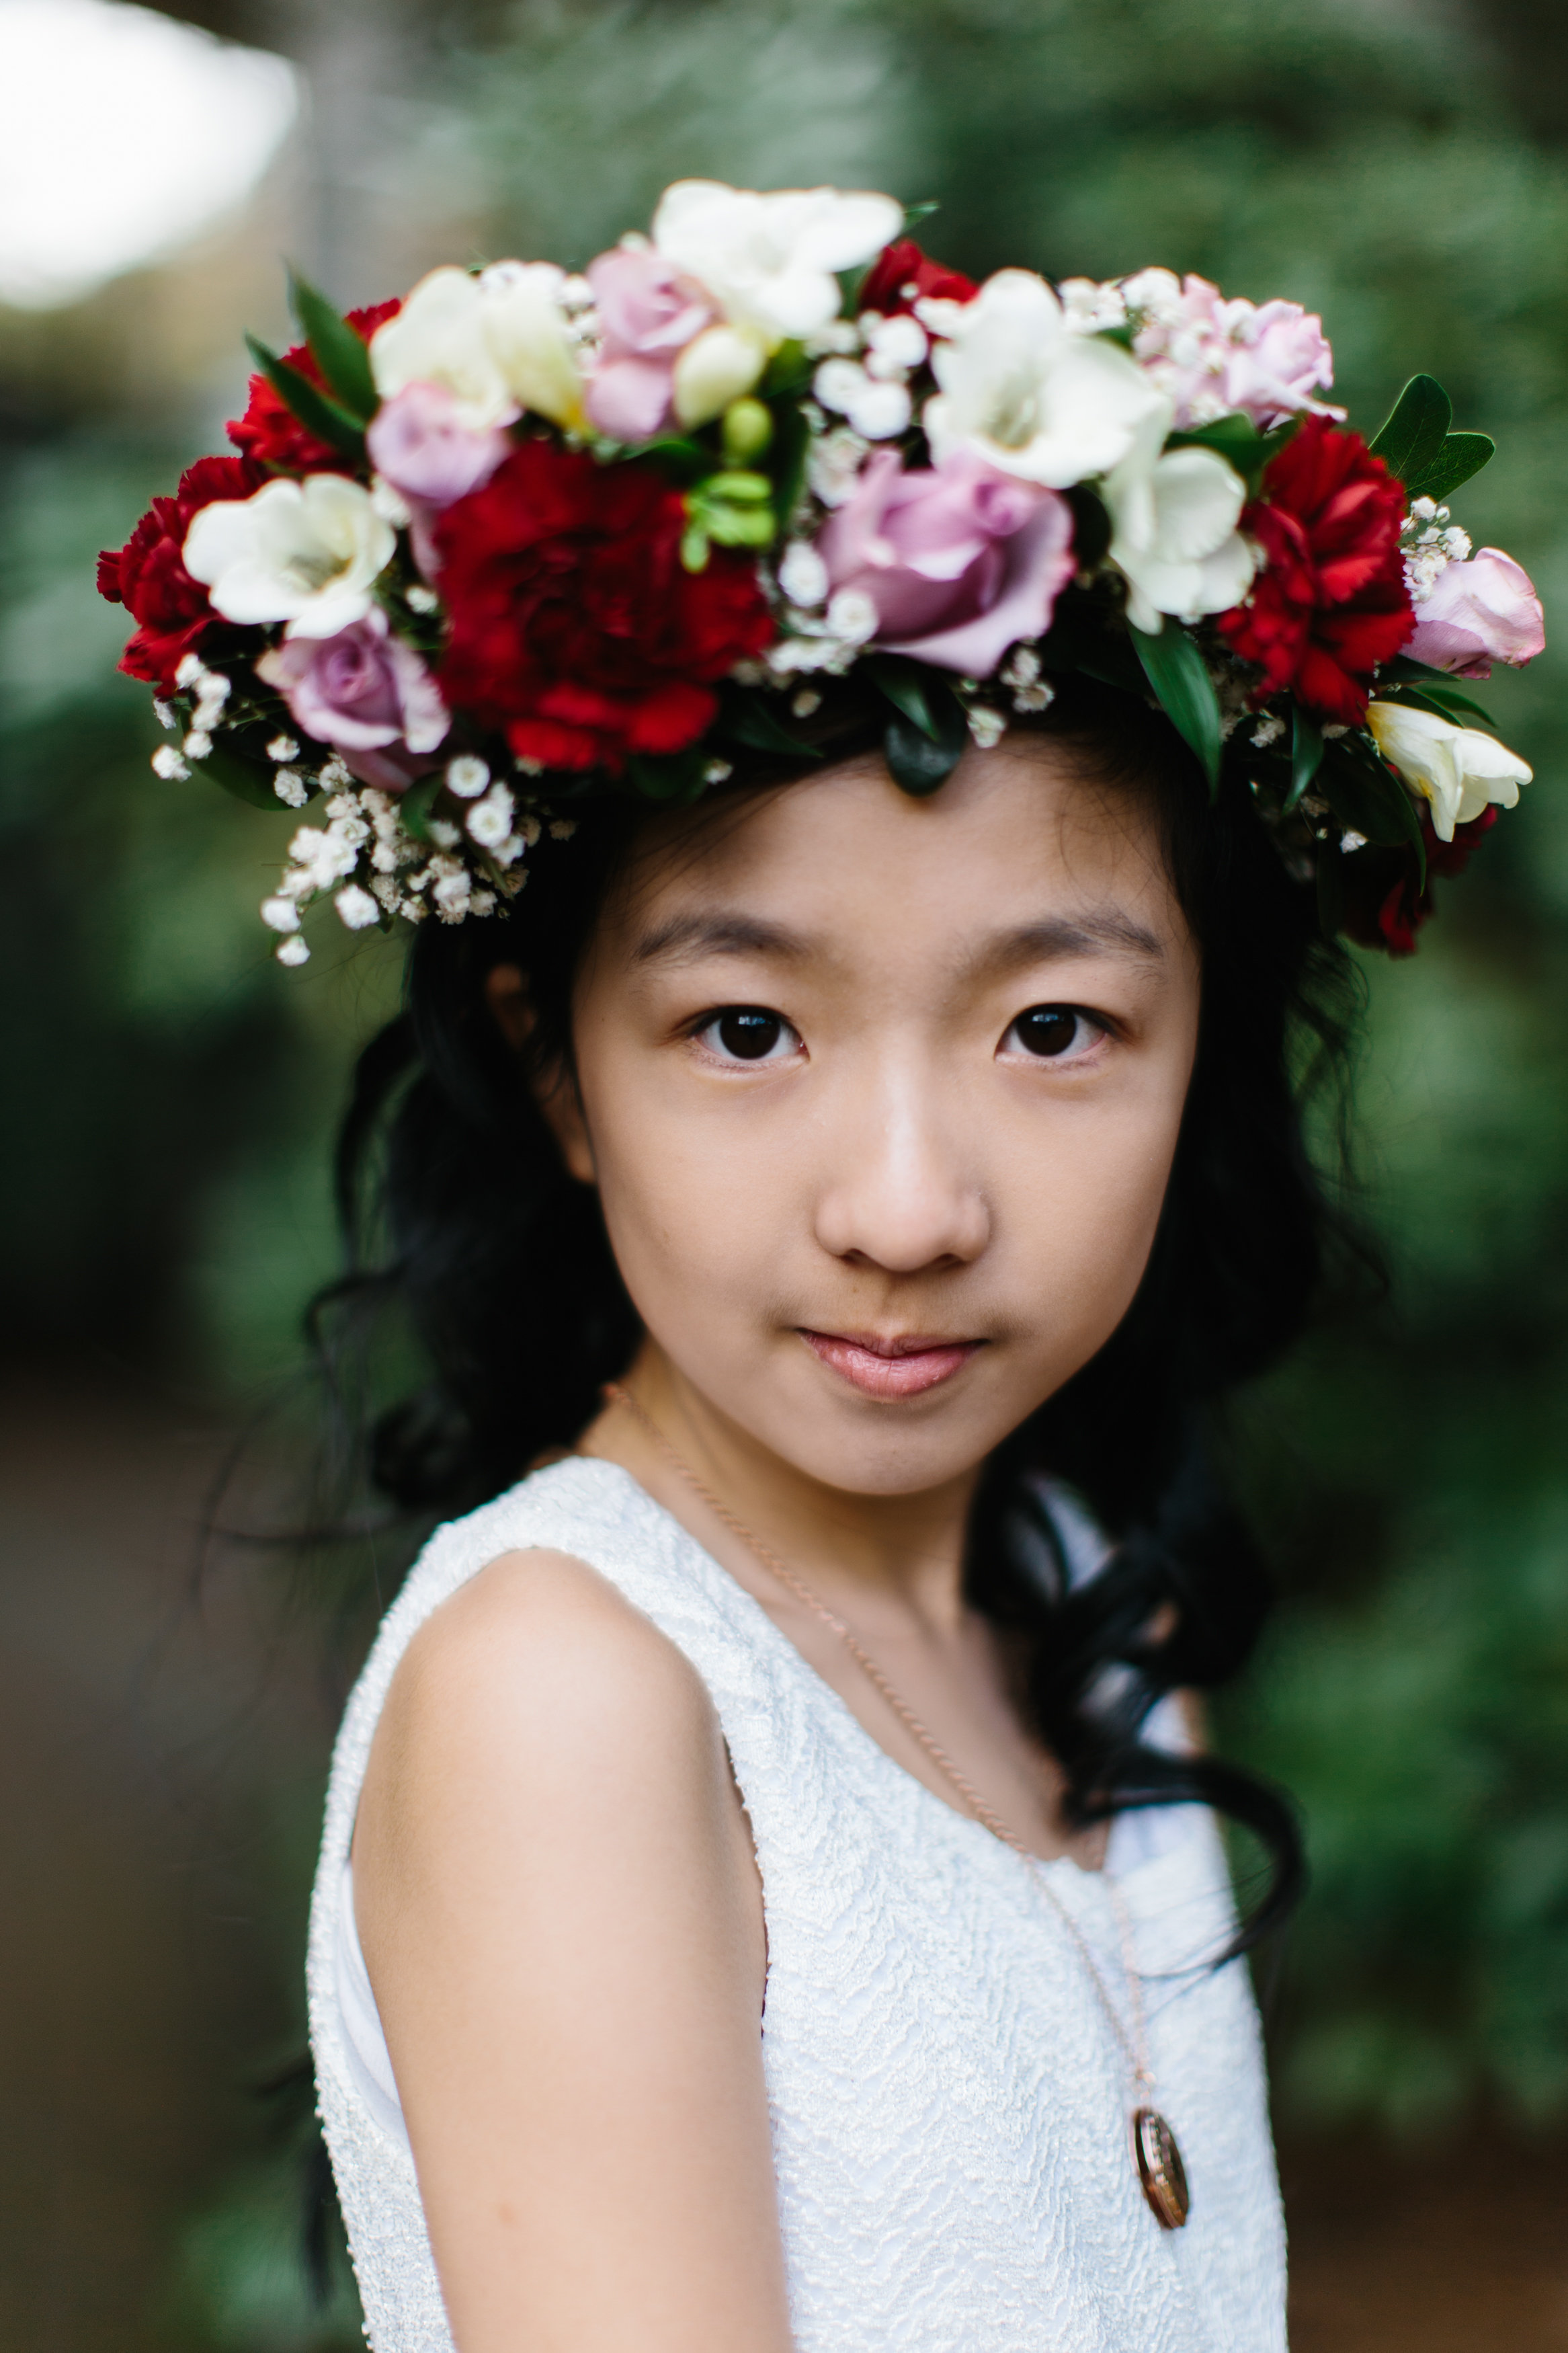 Flower crown for Flower girl, Bride, Bridesmaids and more,  Abbotsford wedding florist , Floral Design by Lili Image by Laura Ann Jensen